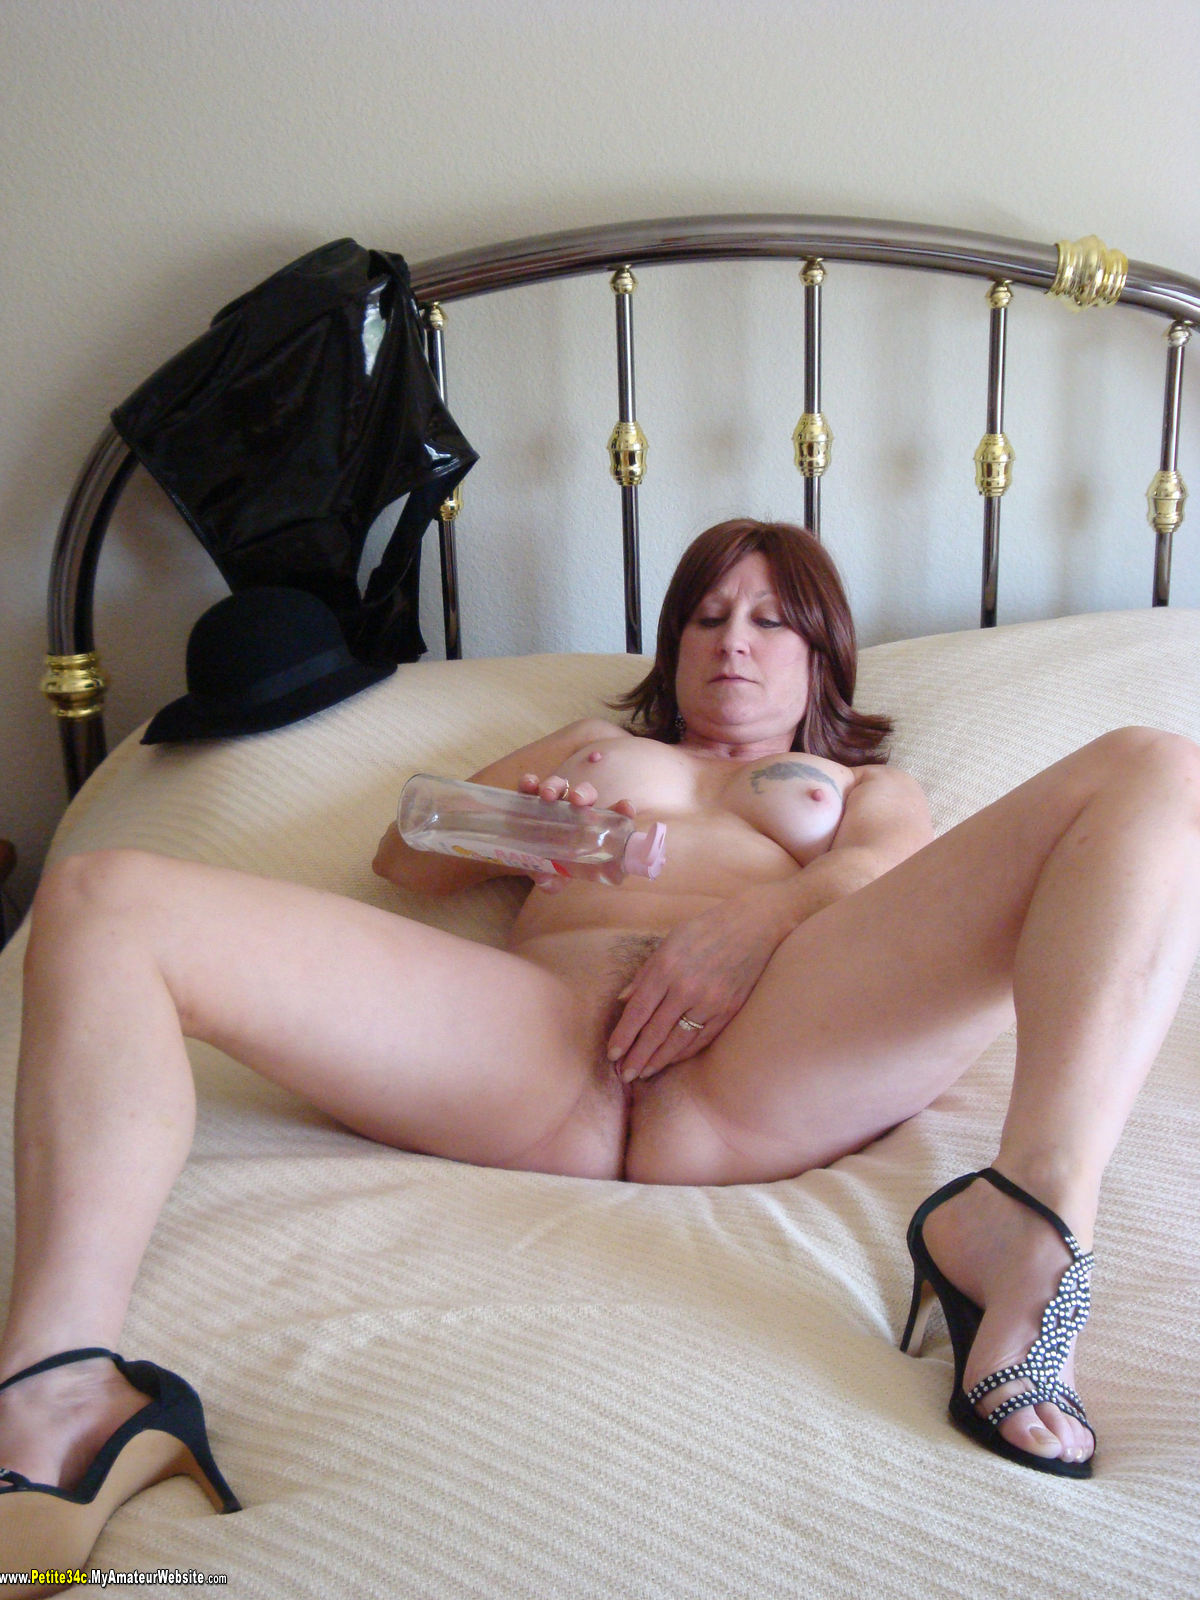 PetiteMistress - Getting more bolder everyday Pt 2